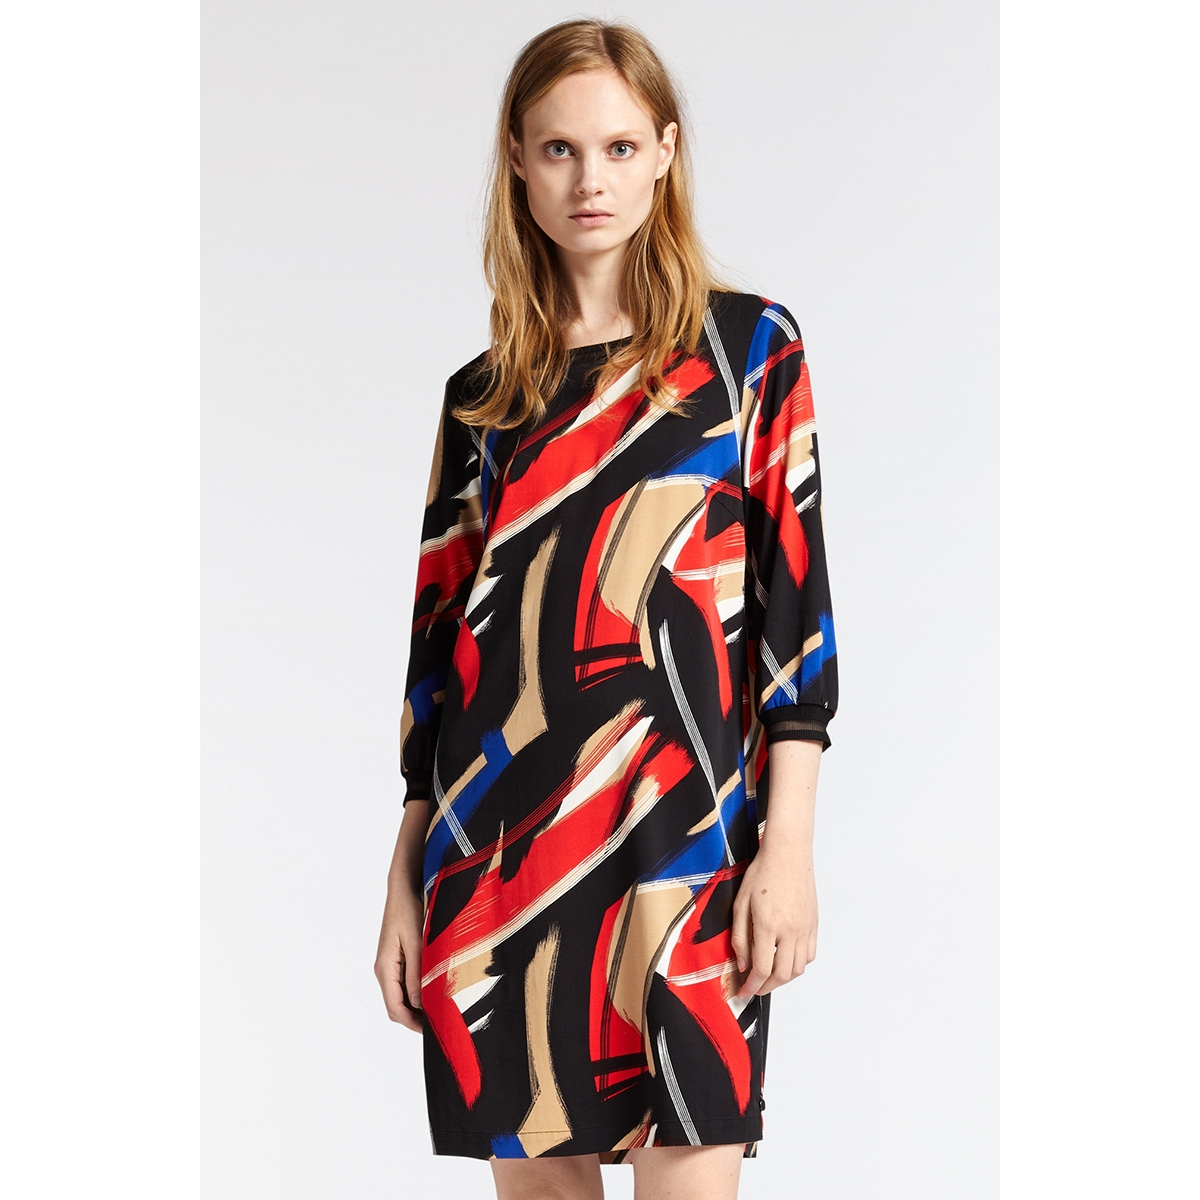 geweven jurk 23001697 sandwich jurk 20151 red